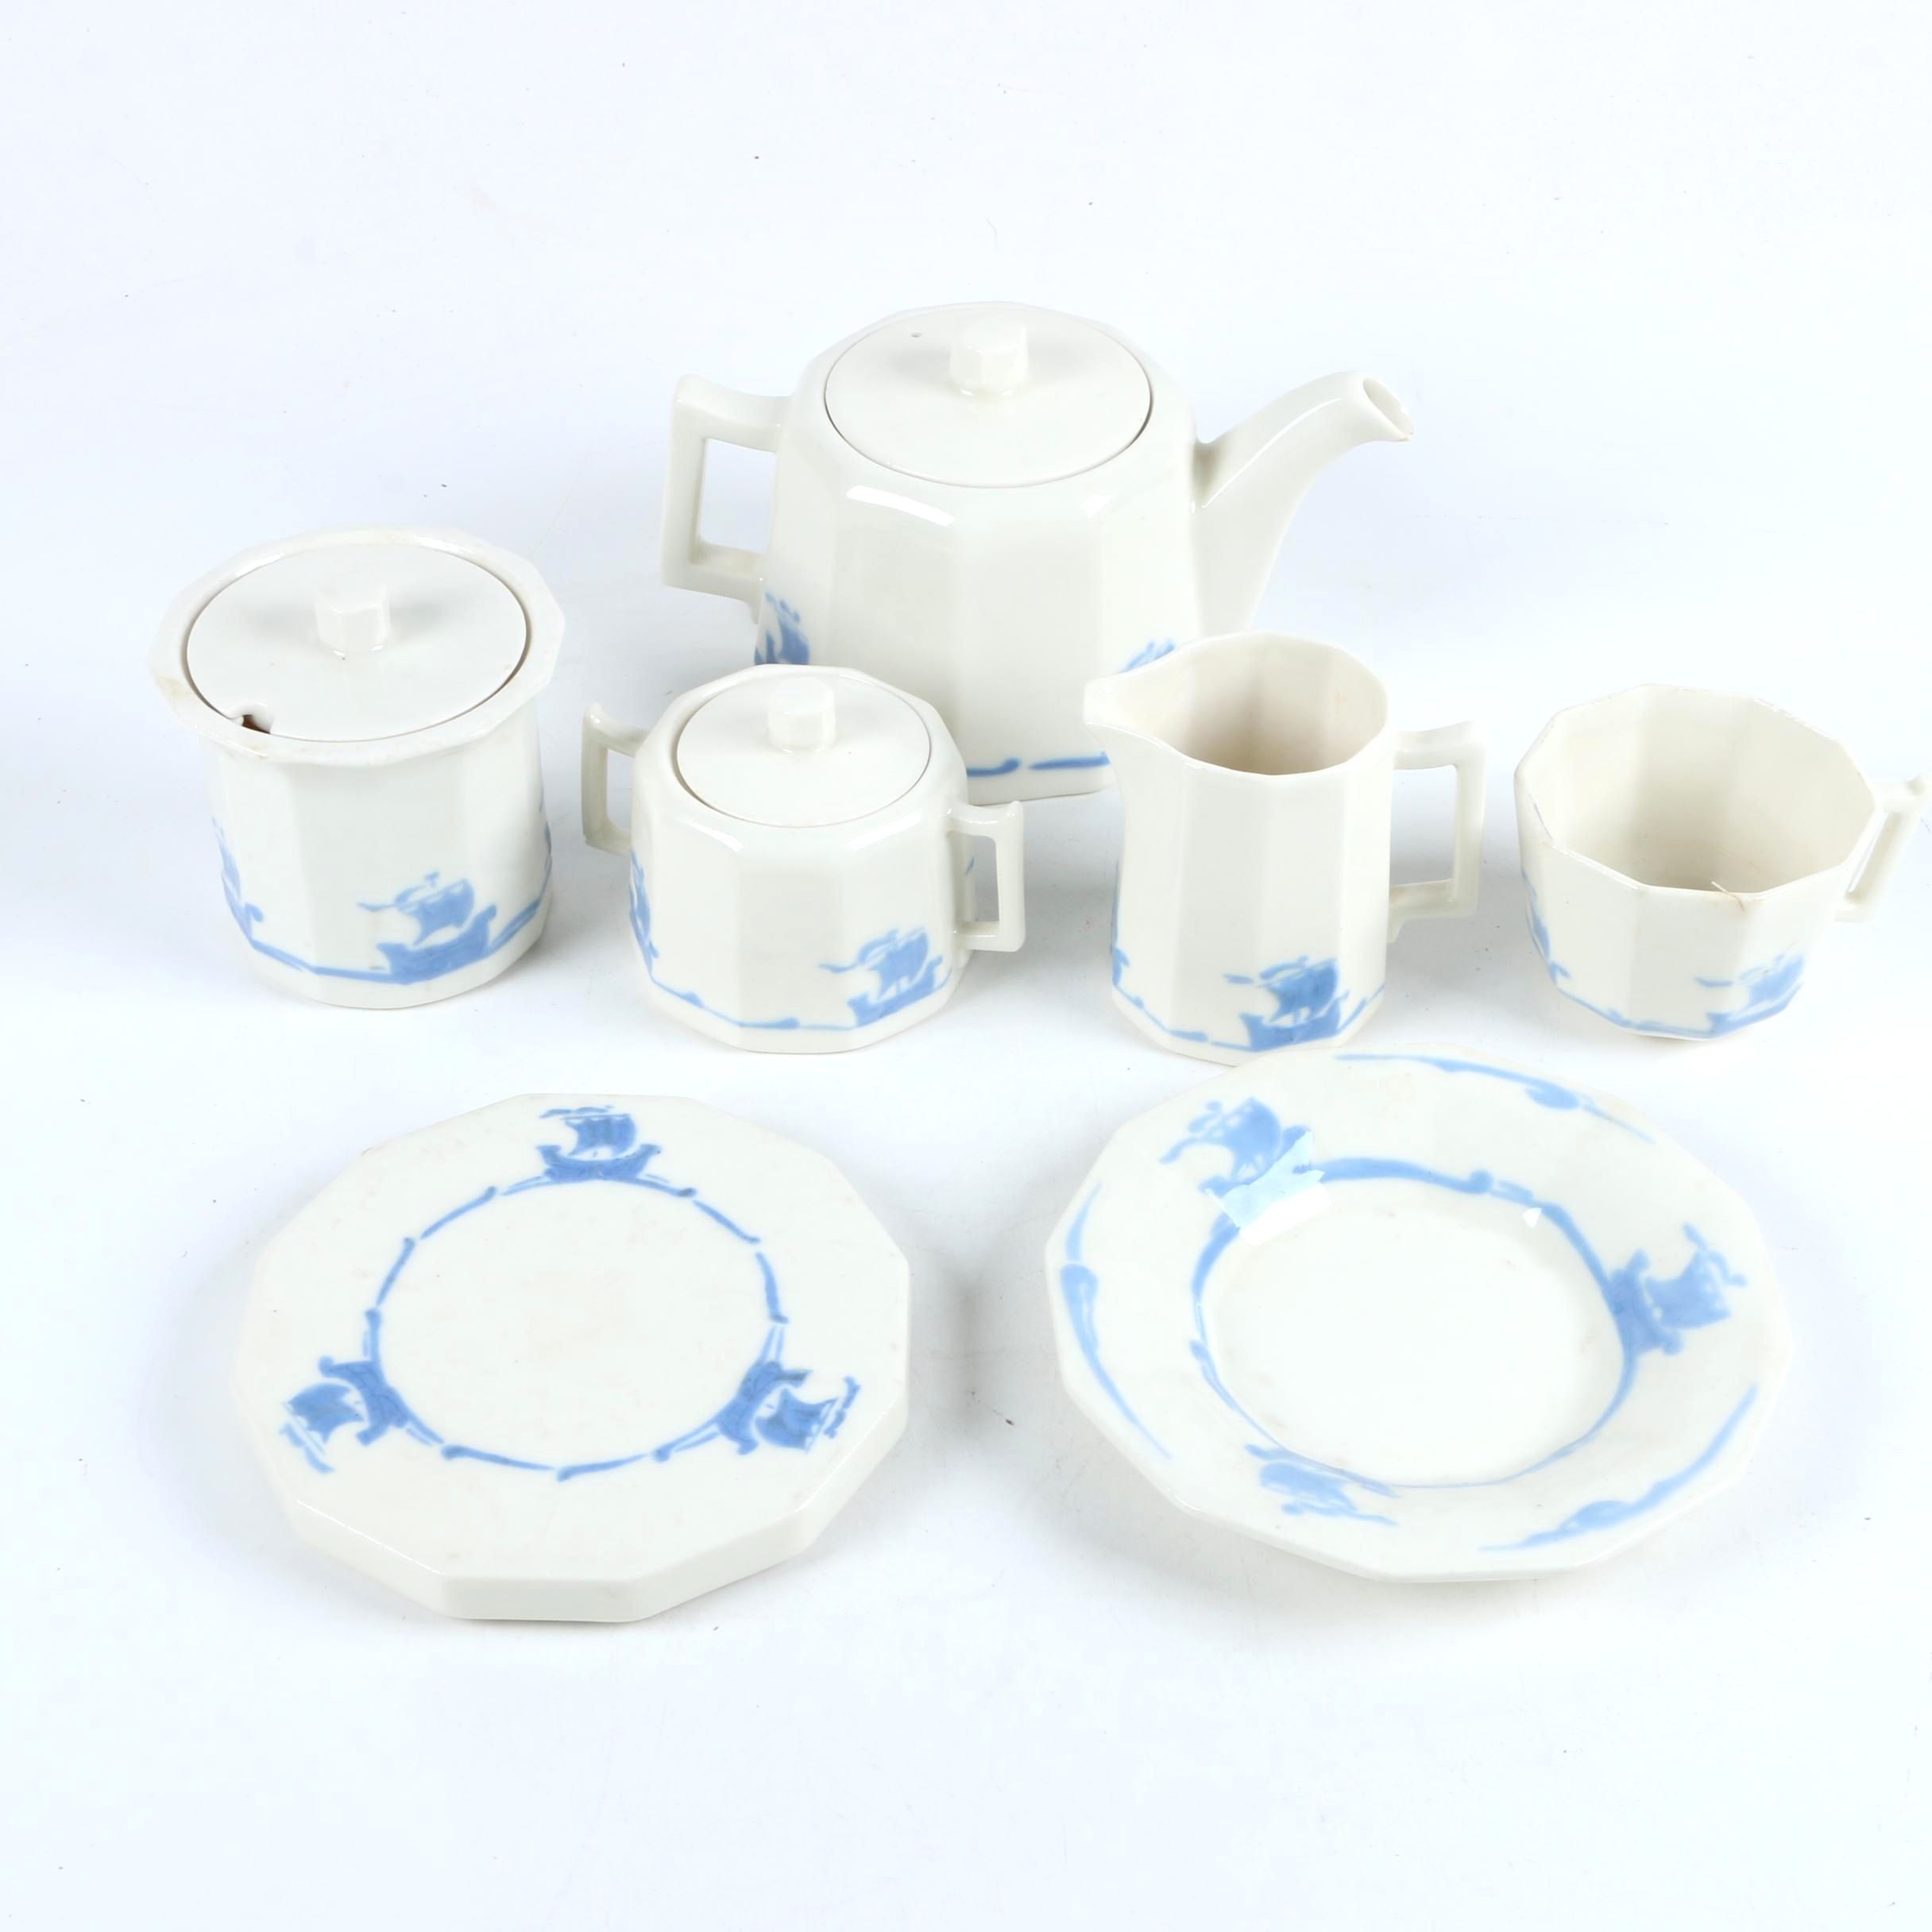 Rookwood Pottery Sailboat Themed Tea Set, Circa 1920